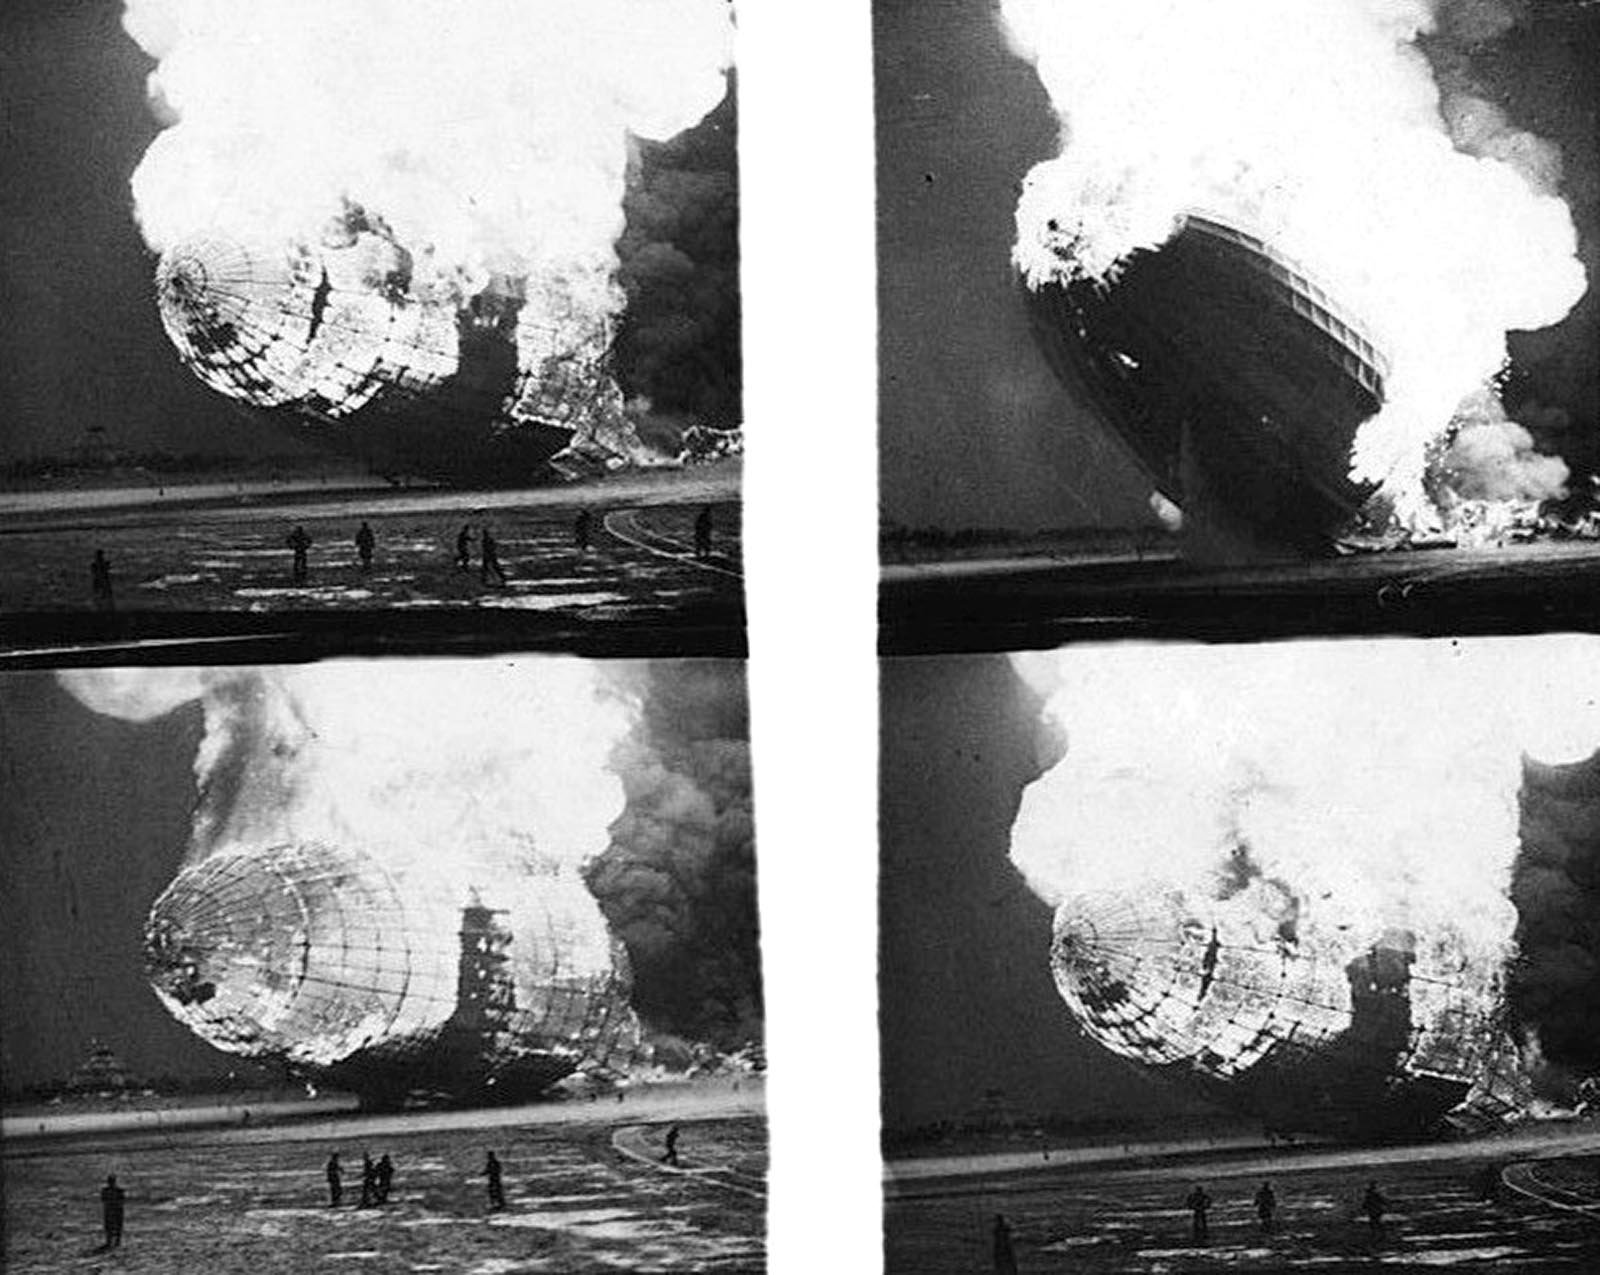 Four black-and-white images of the flames advancing as they consumed the Hindenburg.